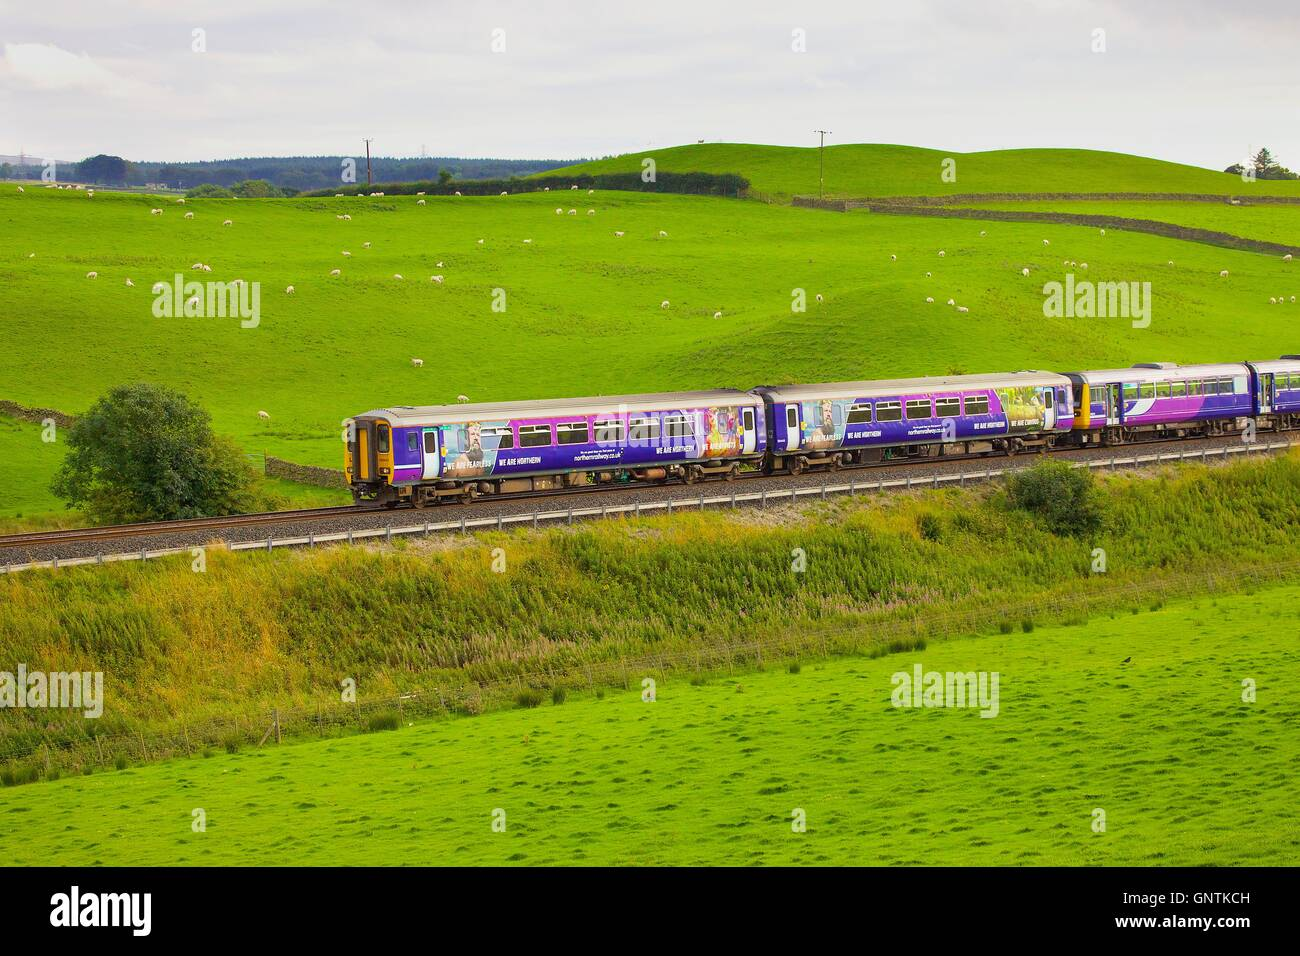 Class,156 super sprinter train and Class 142 Pacer train on an embankment. Gilsland, Cumbria, England, United Kingdom, - Stock Image